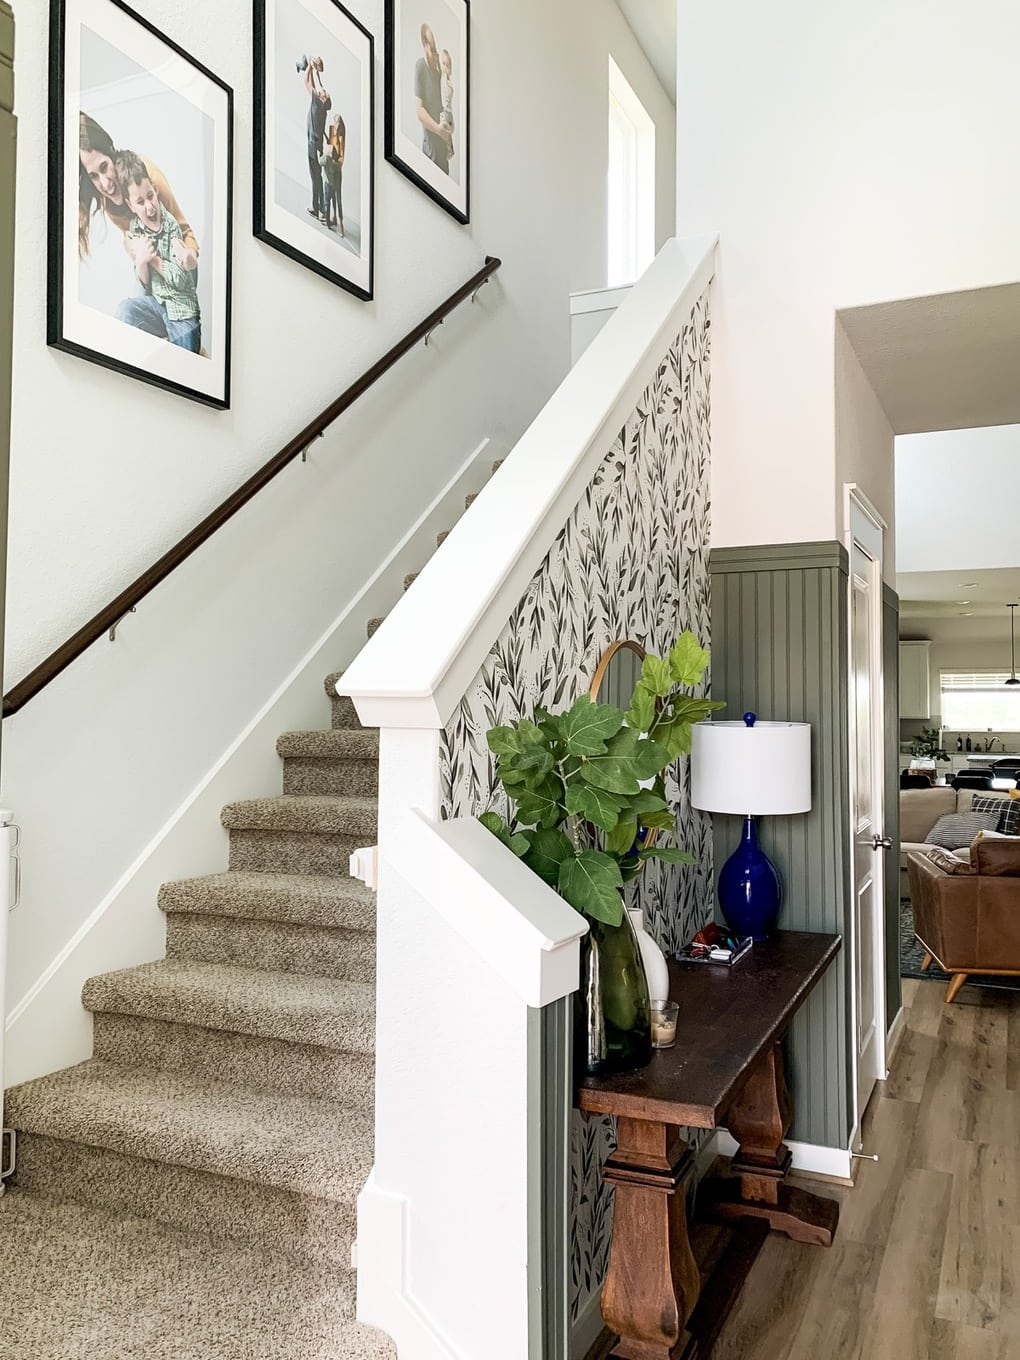 Entryway with photos going up staircase